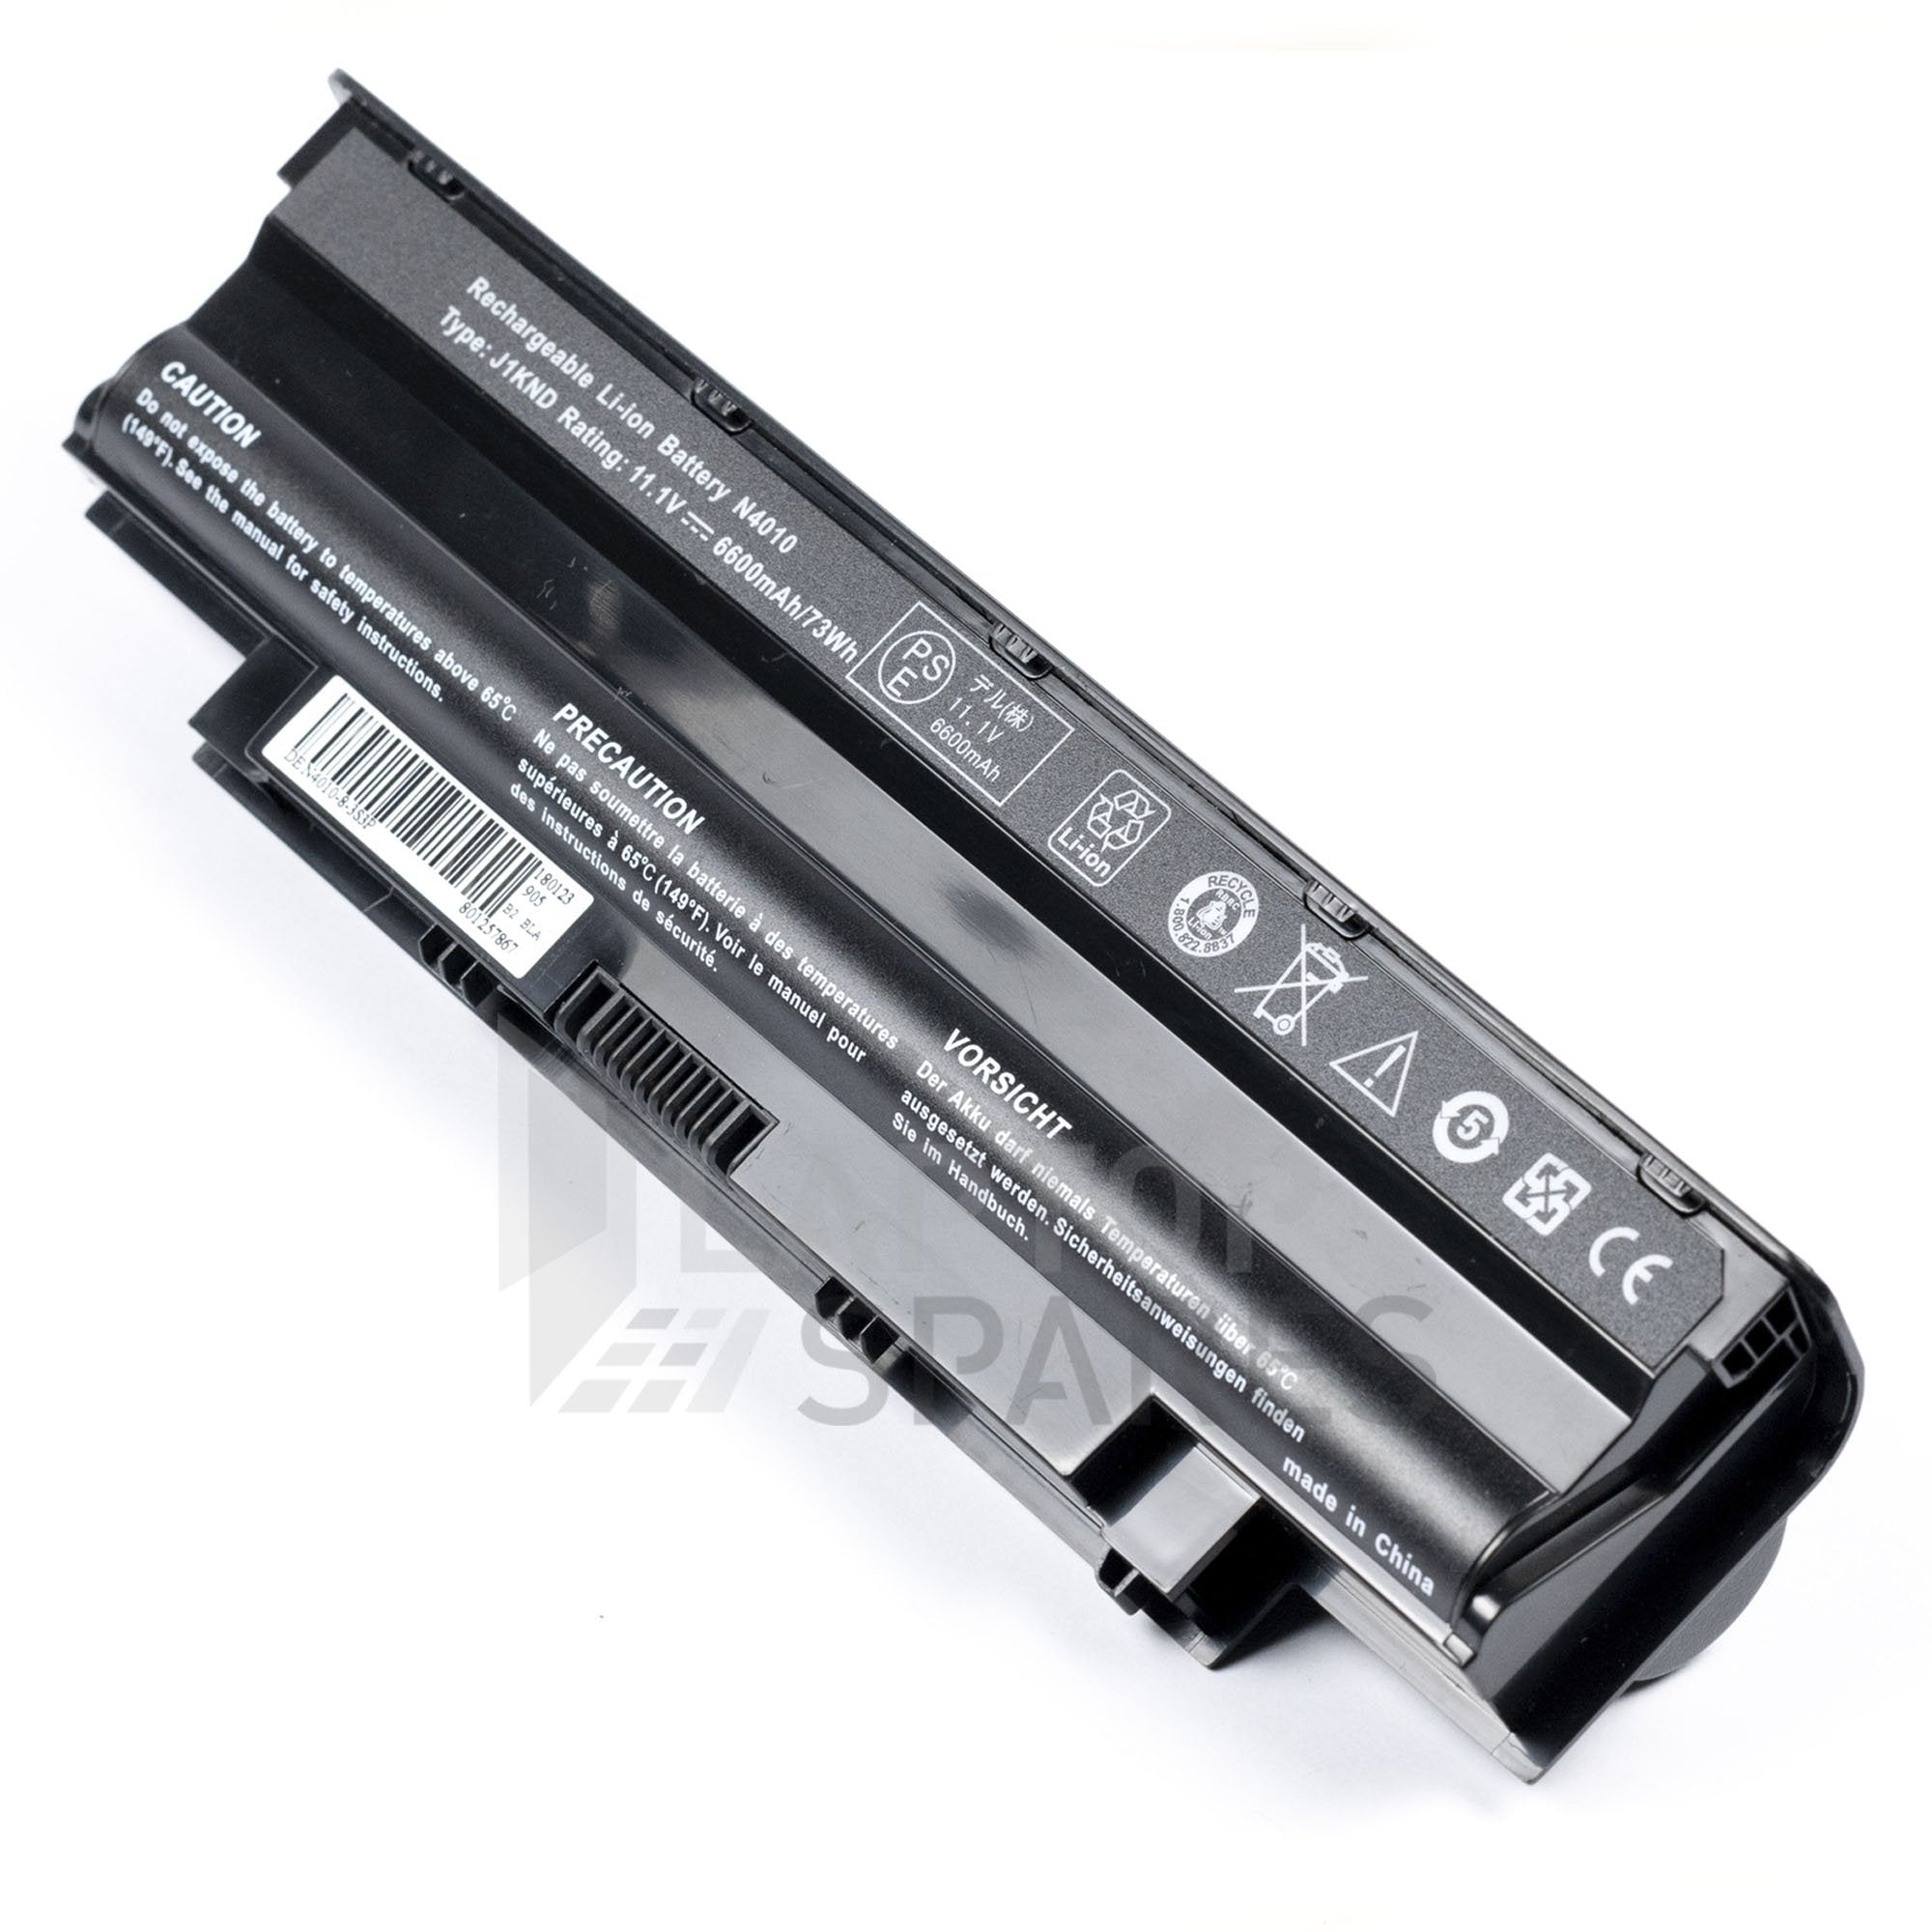 Dell Inspiron 14R 4010-D430 6600mAh 9 Cell Battery